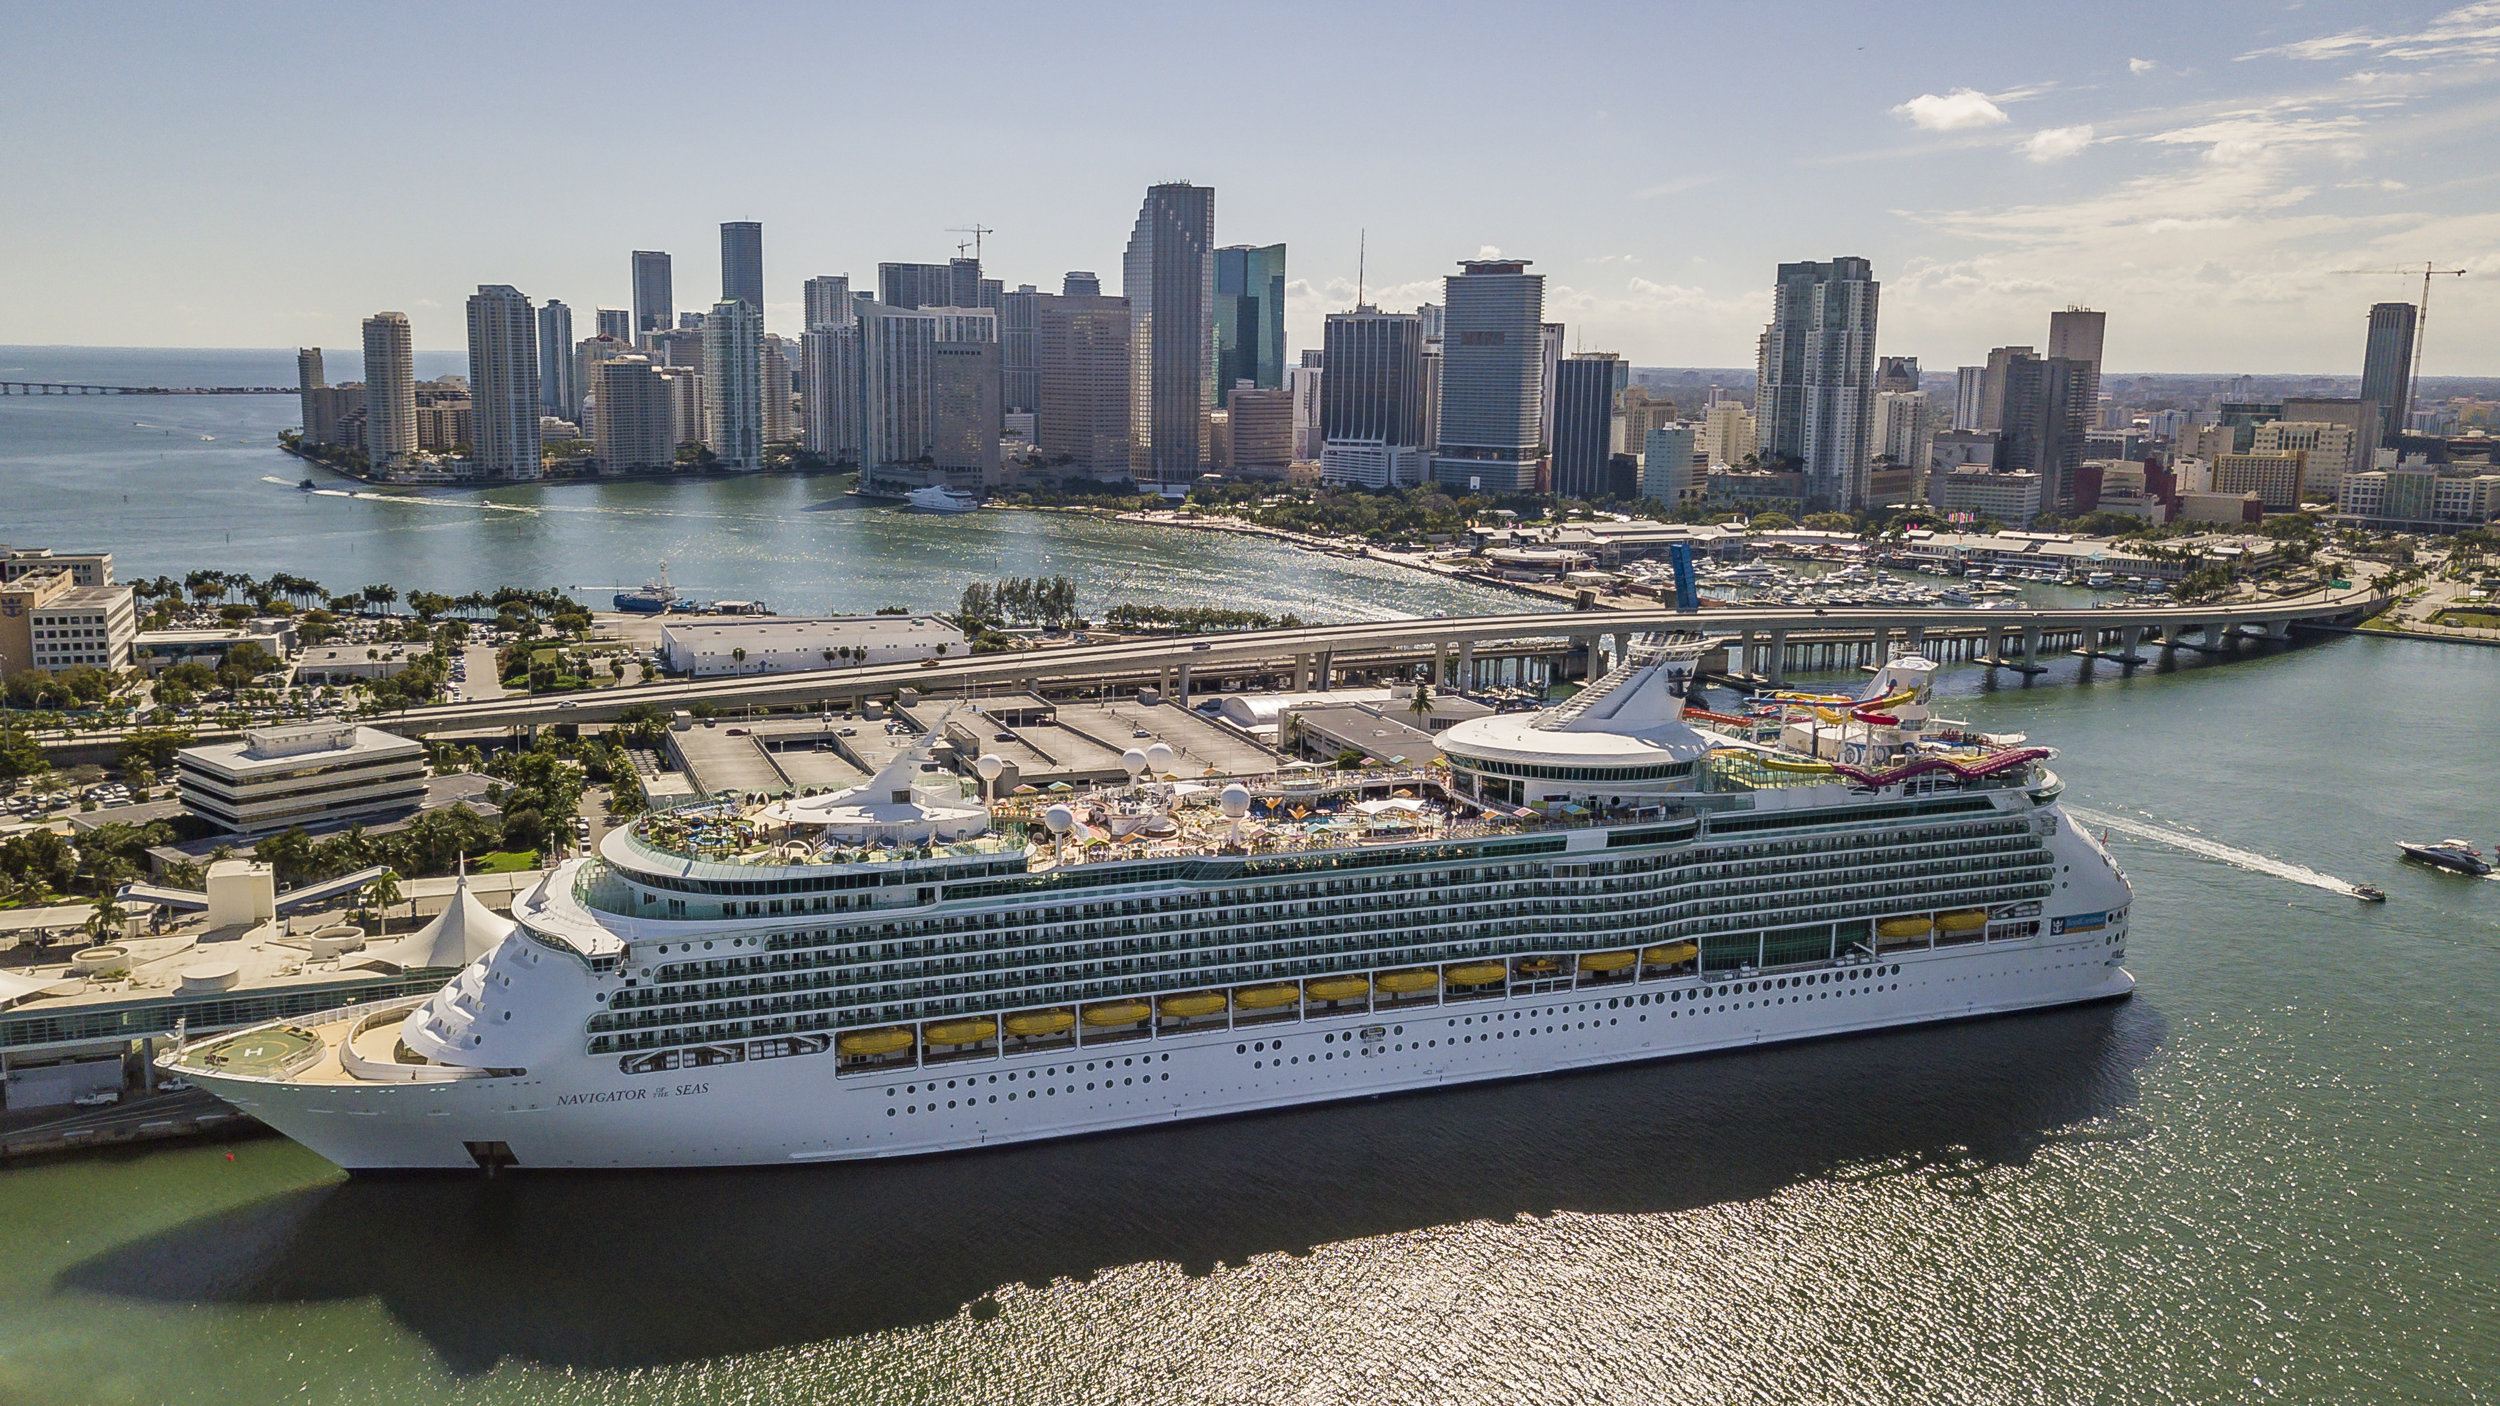 Royal Caribbean's newly renovated Navigator of the Seas docks at PortMiami on Friday, March 1, 2019. Royal Caribbean is in the process of spending $115 million to renovate some of their cruise ship lines like this one.